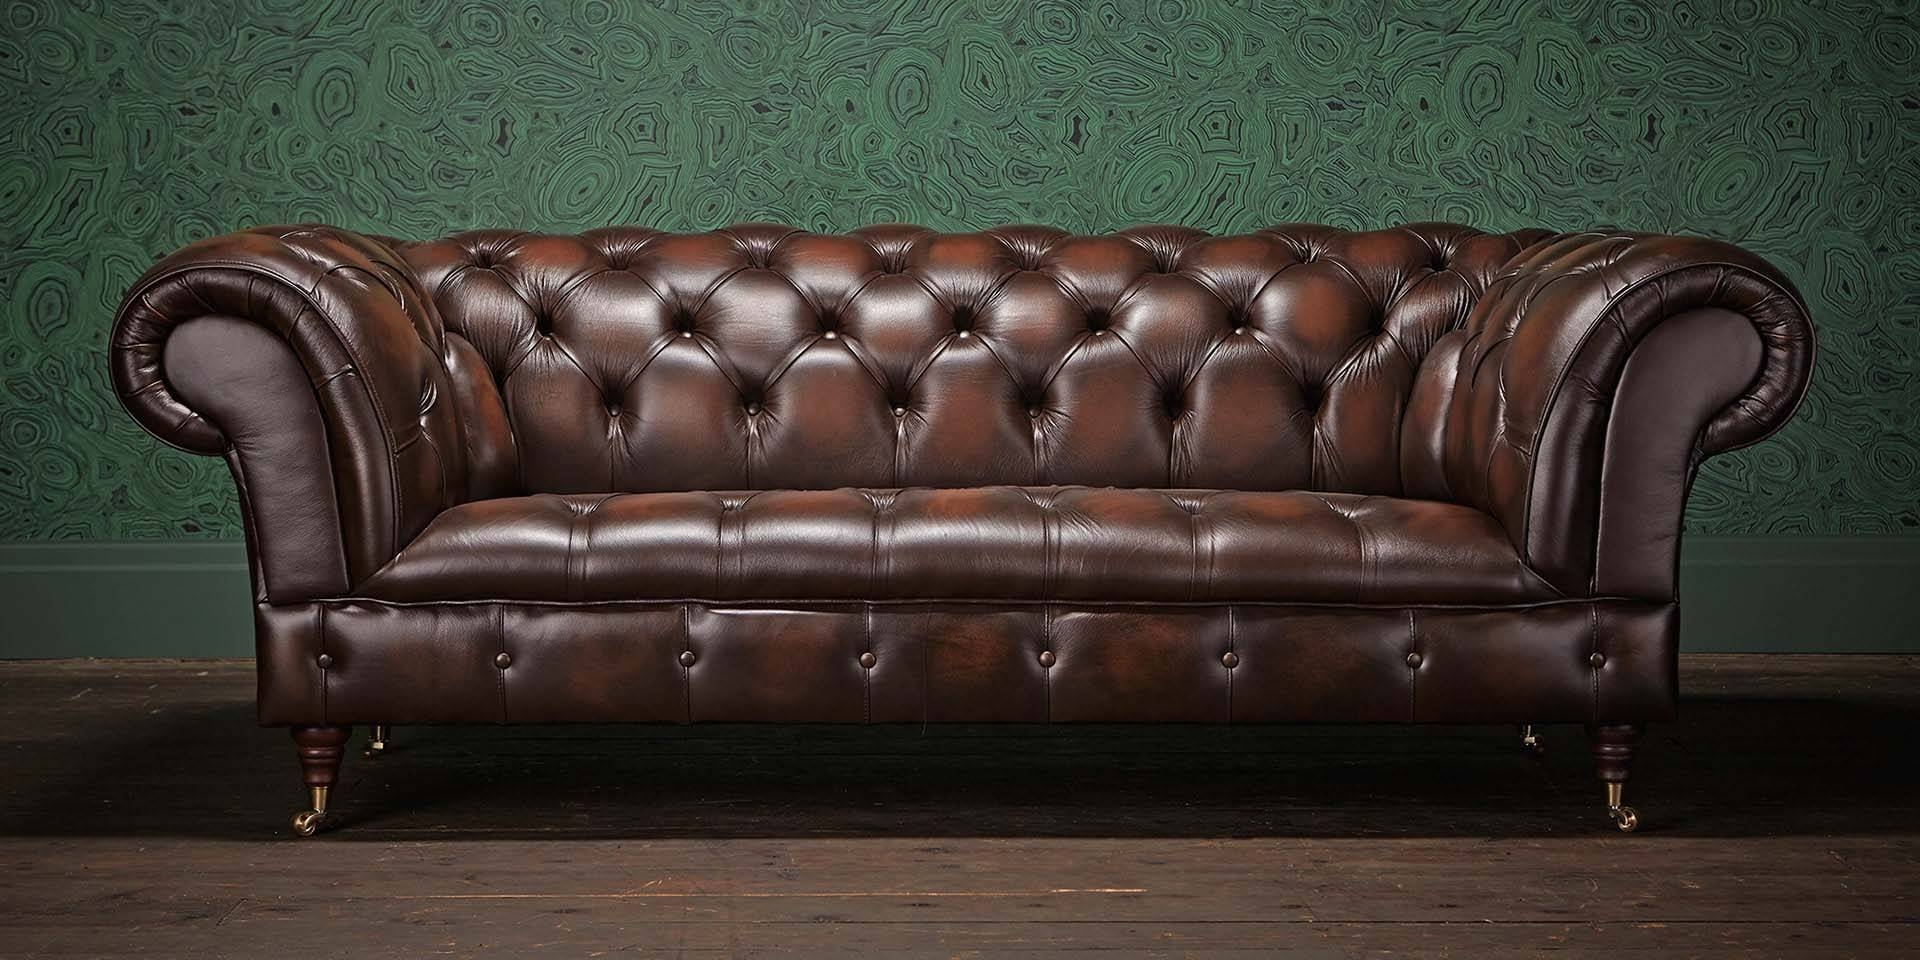 Chesterfields Of England | The Original Chesterfield Company intended for Leather Chesterfield Sofas (Image 10 of 30)